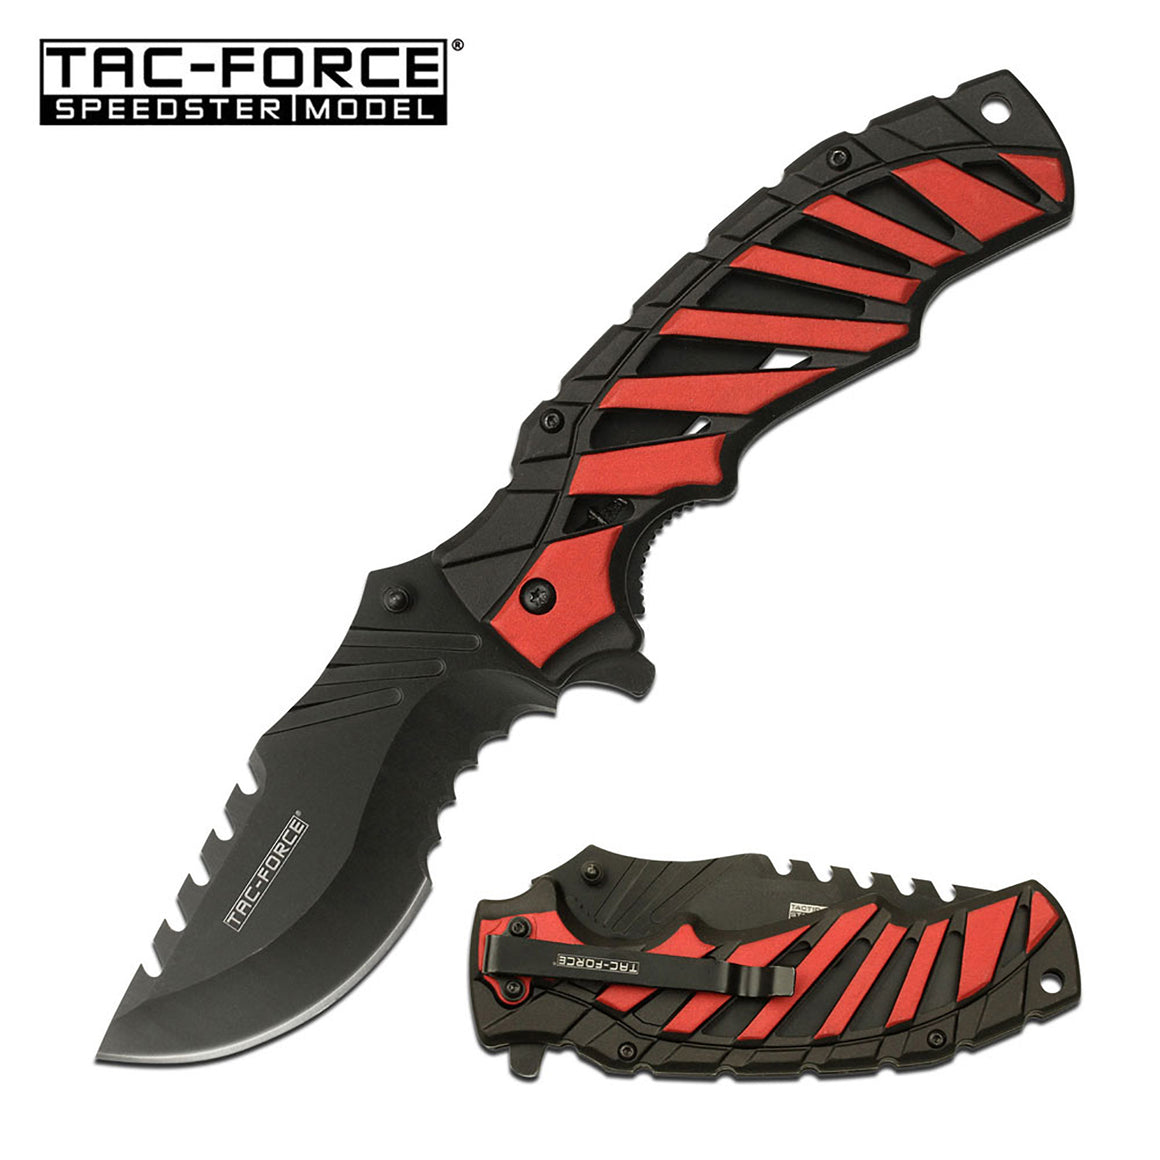 Tac-Force TF-944RD Spring Assisted Knife